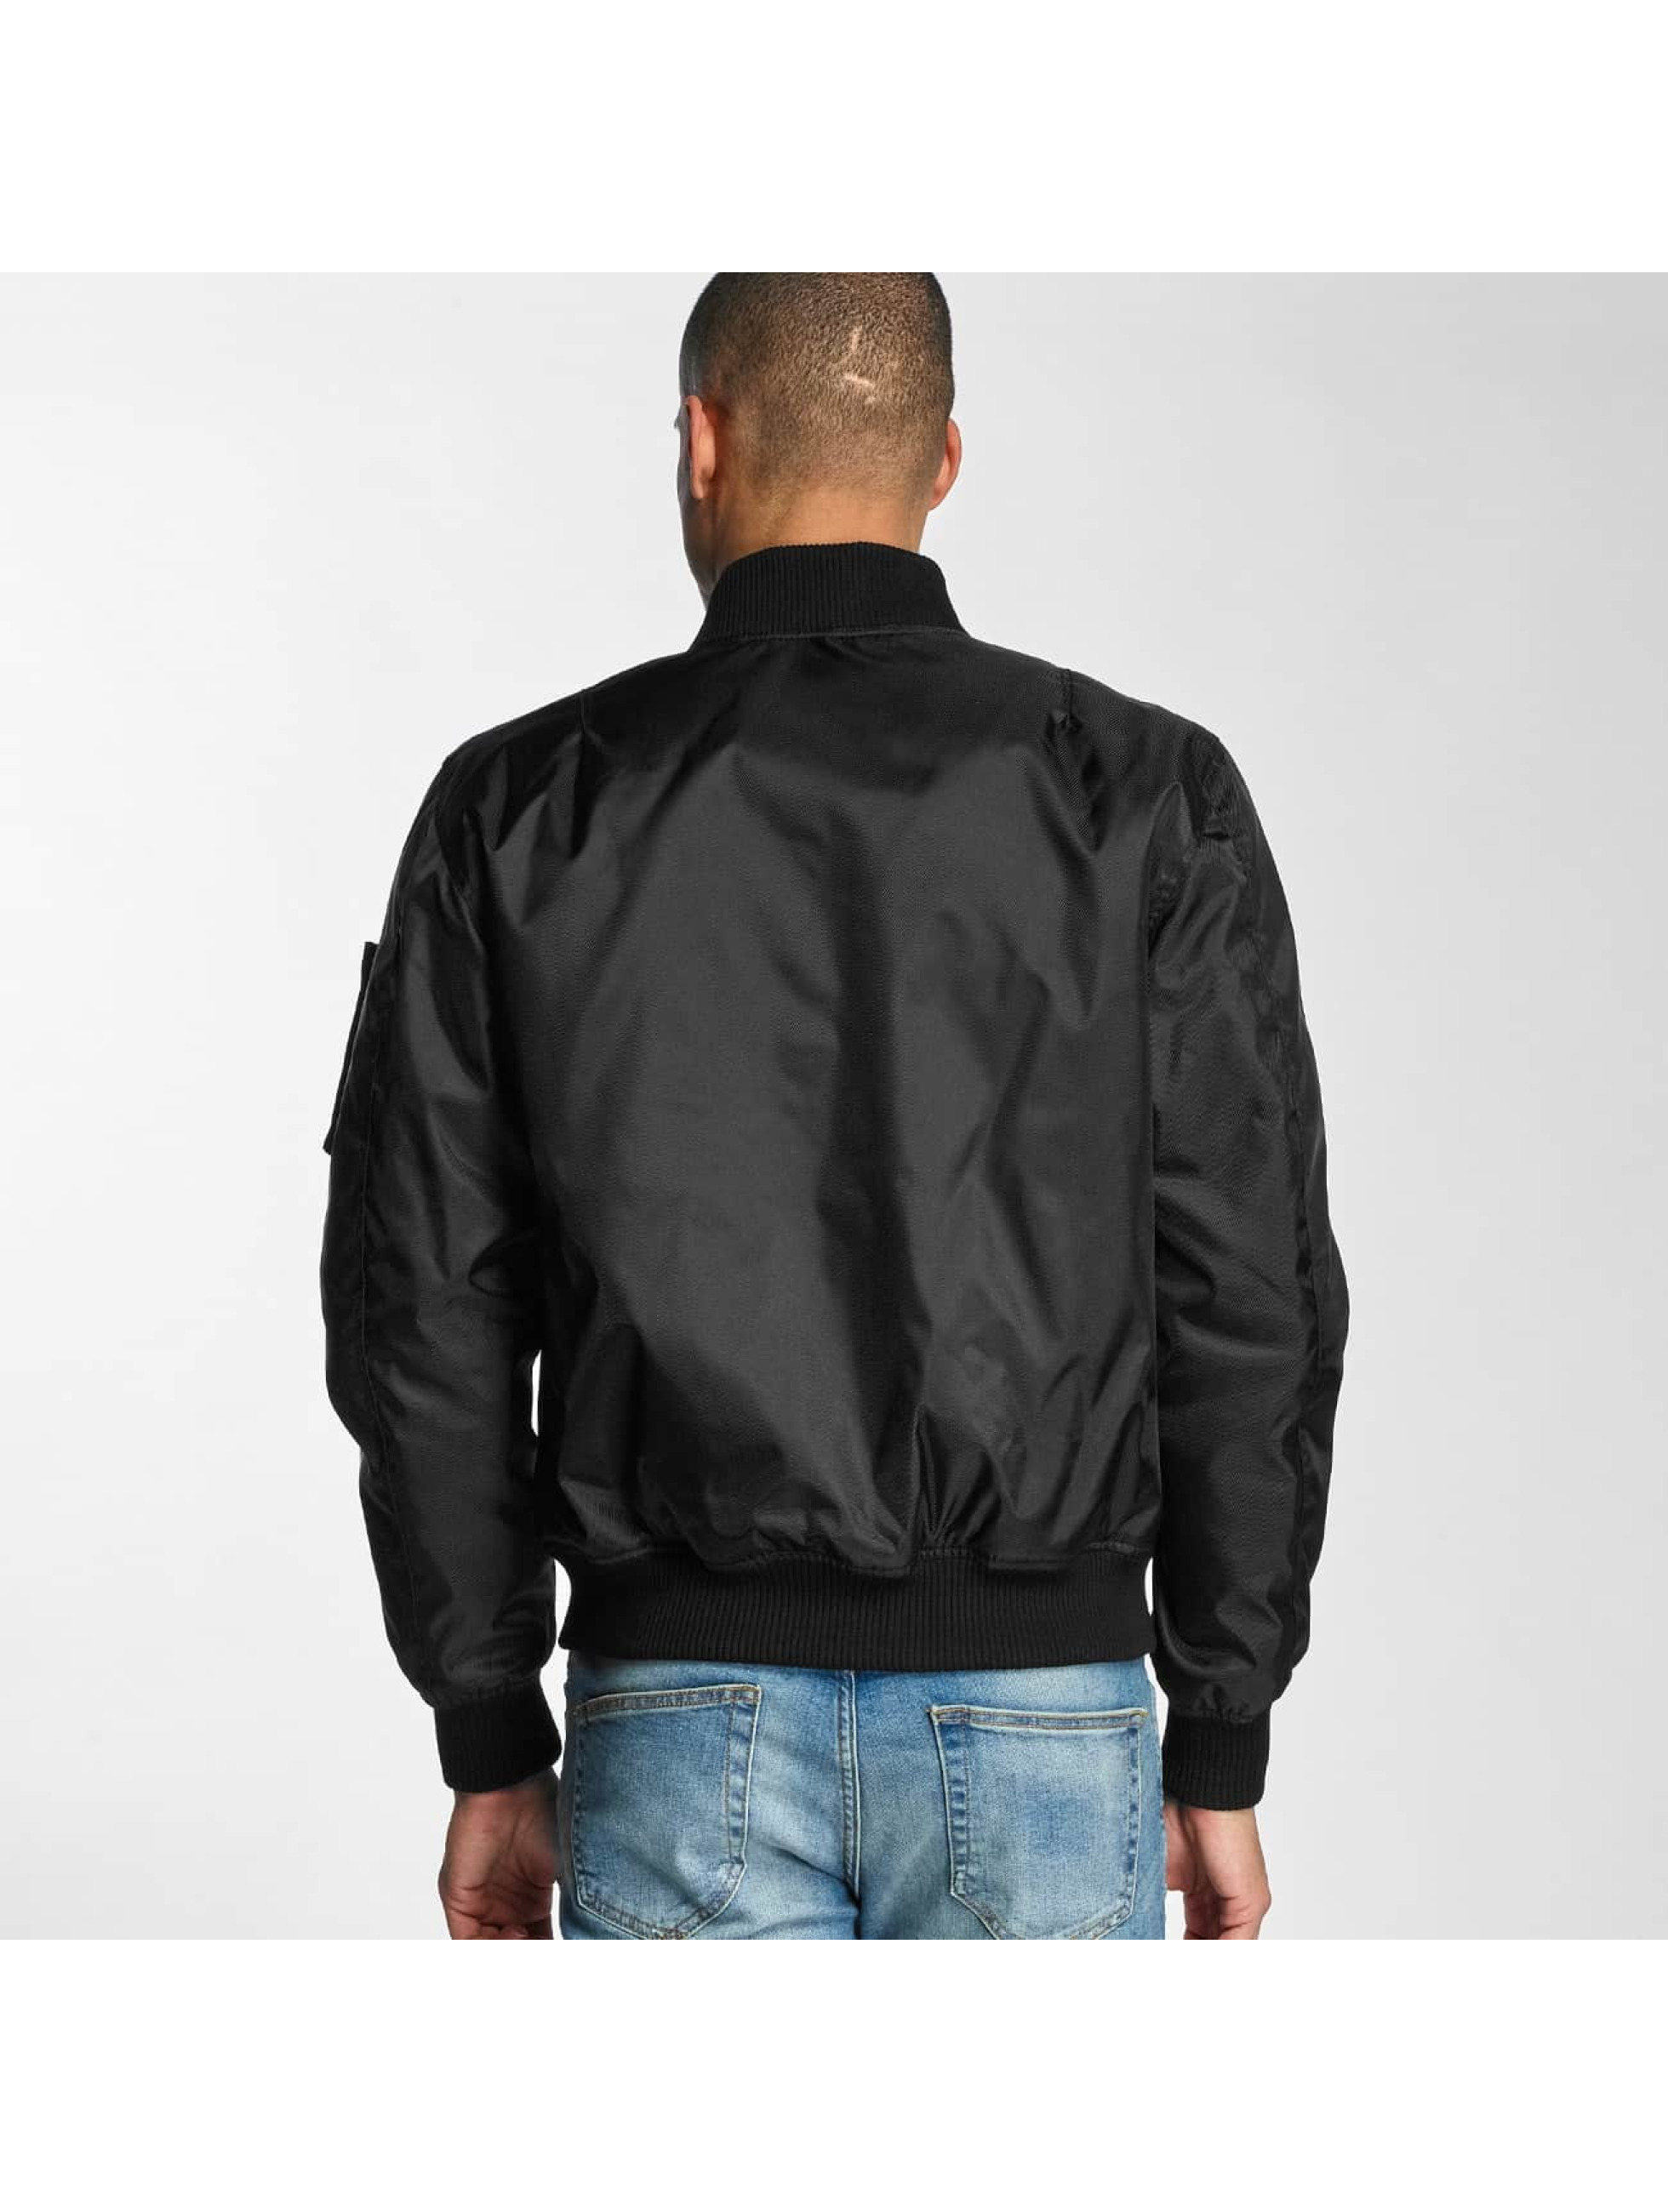 Yezz Bomber jacket Rock black